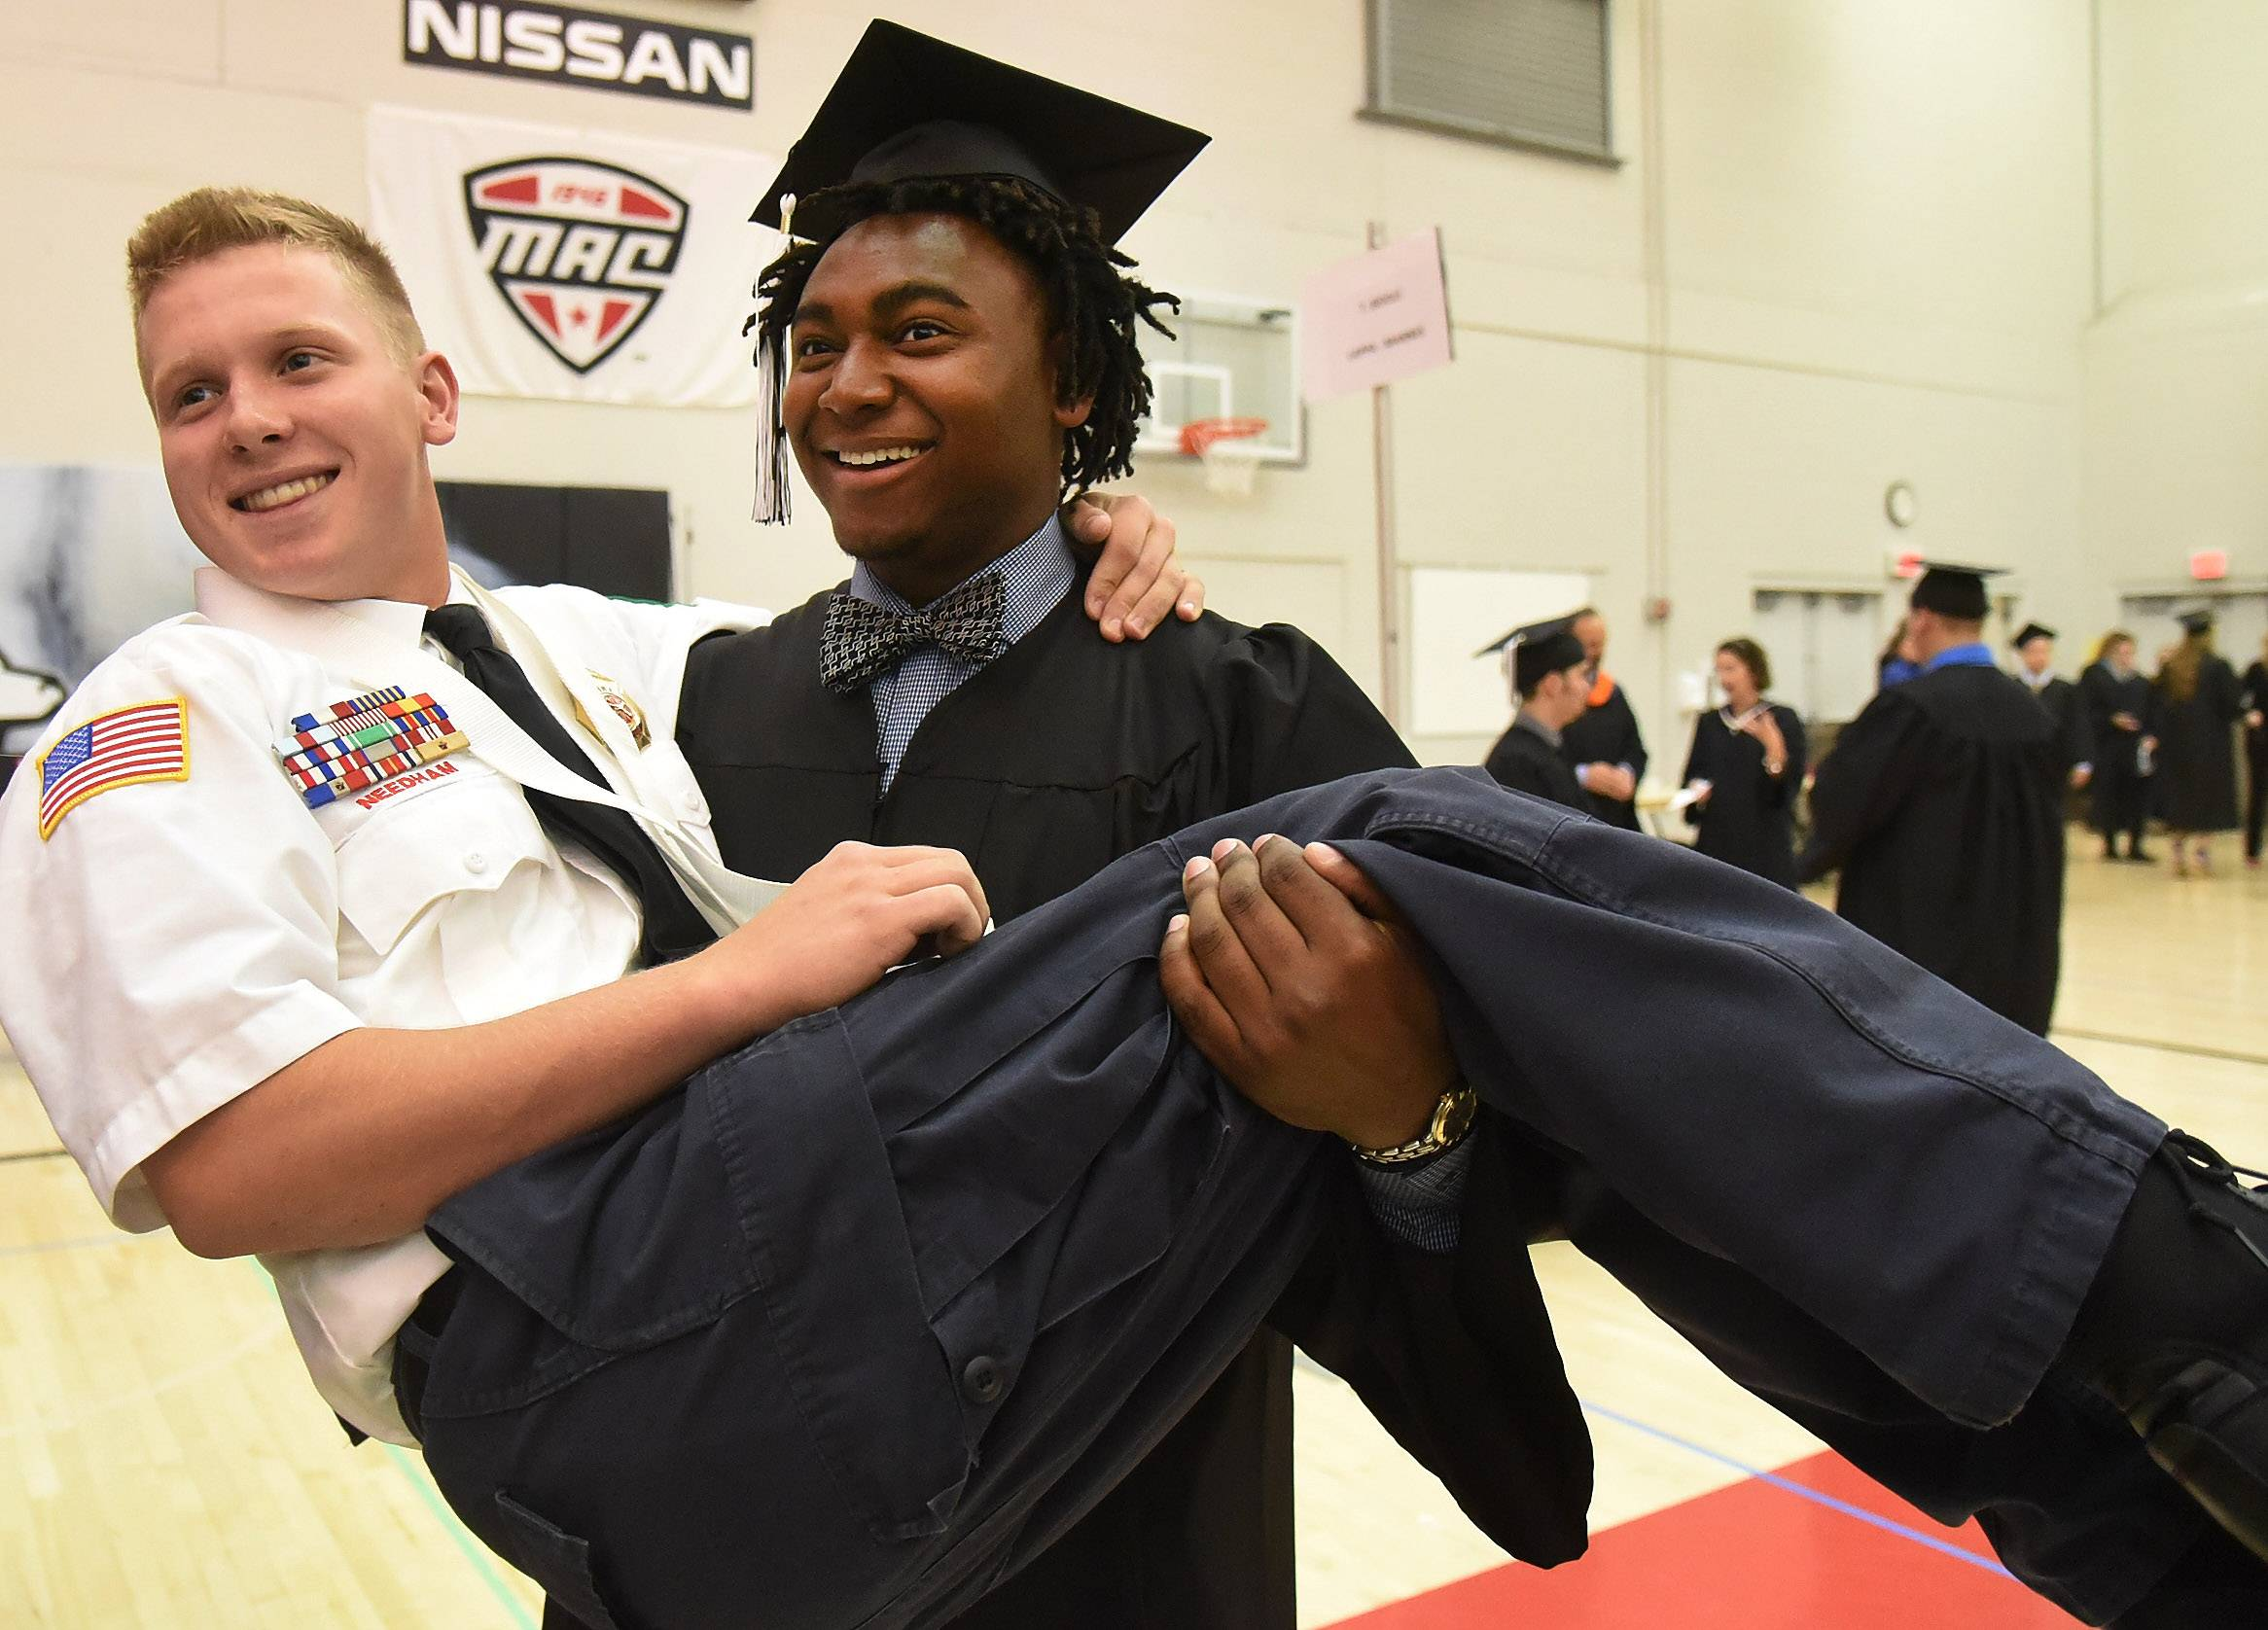 Color guard member Jake Needham gets a lift from friend Sam Suggs before commencement. Kaneland High School held their 2017 commencement ceremony on Sunday, May 21 at Northern Illinois University in DeKalb.